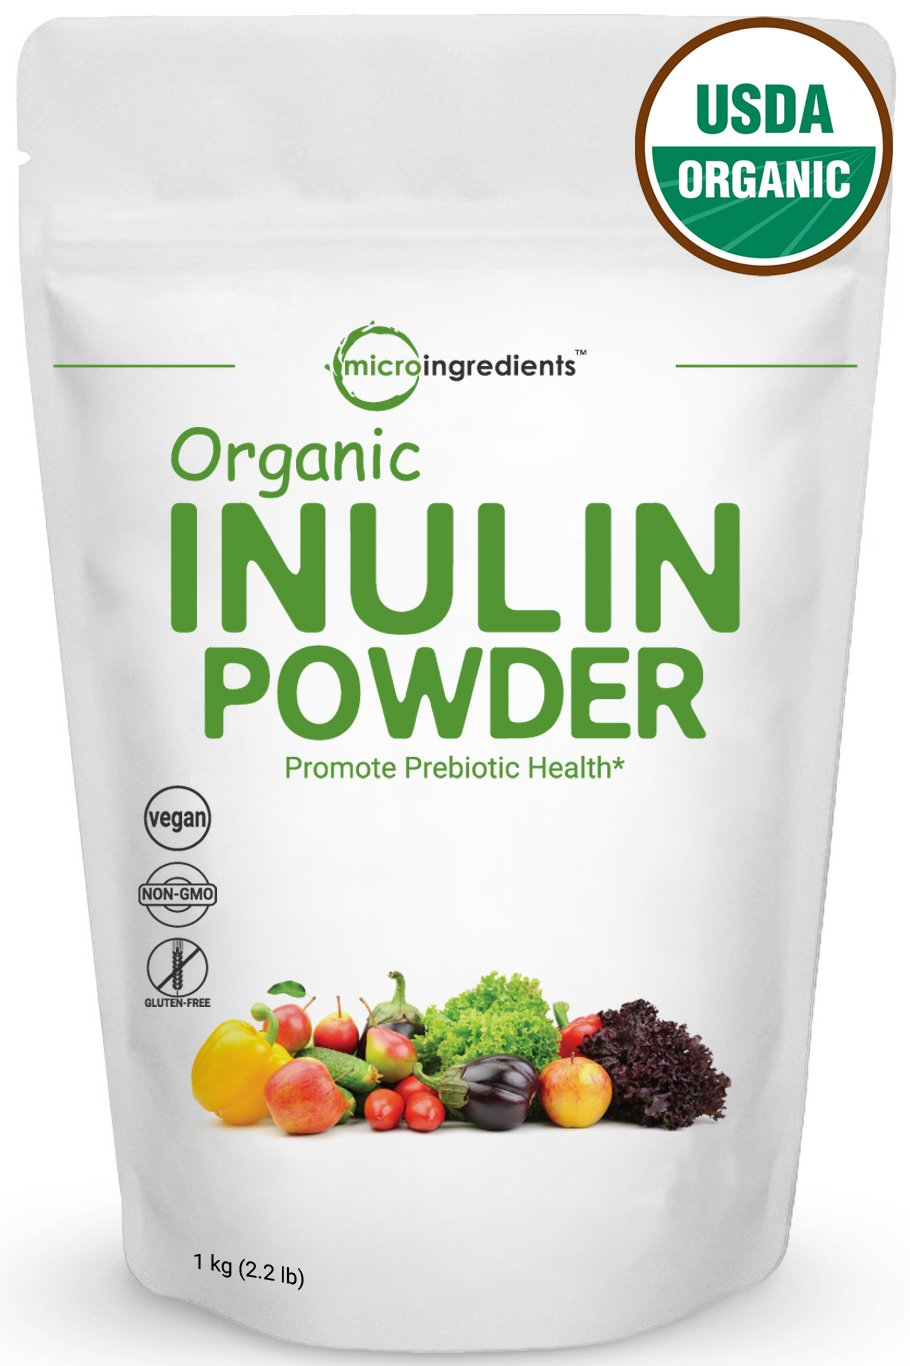 how to use inulin powder